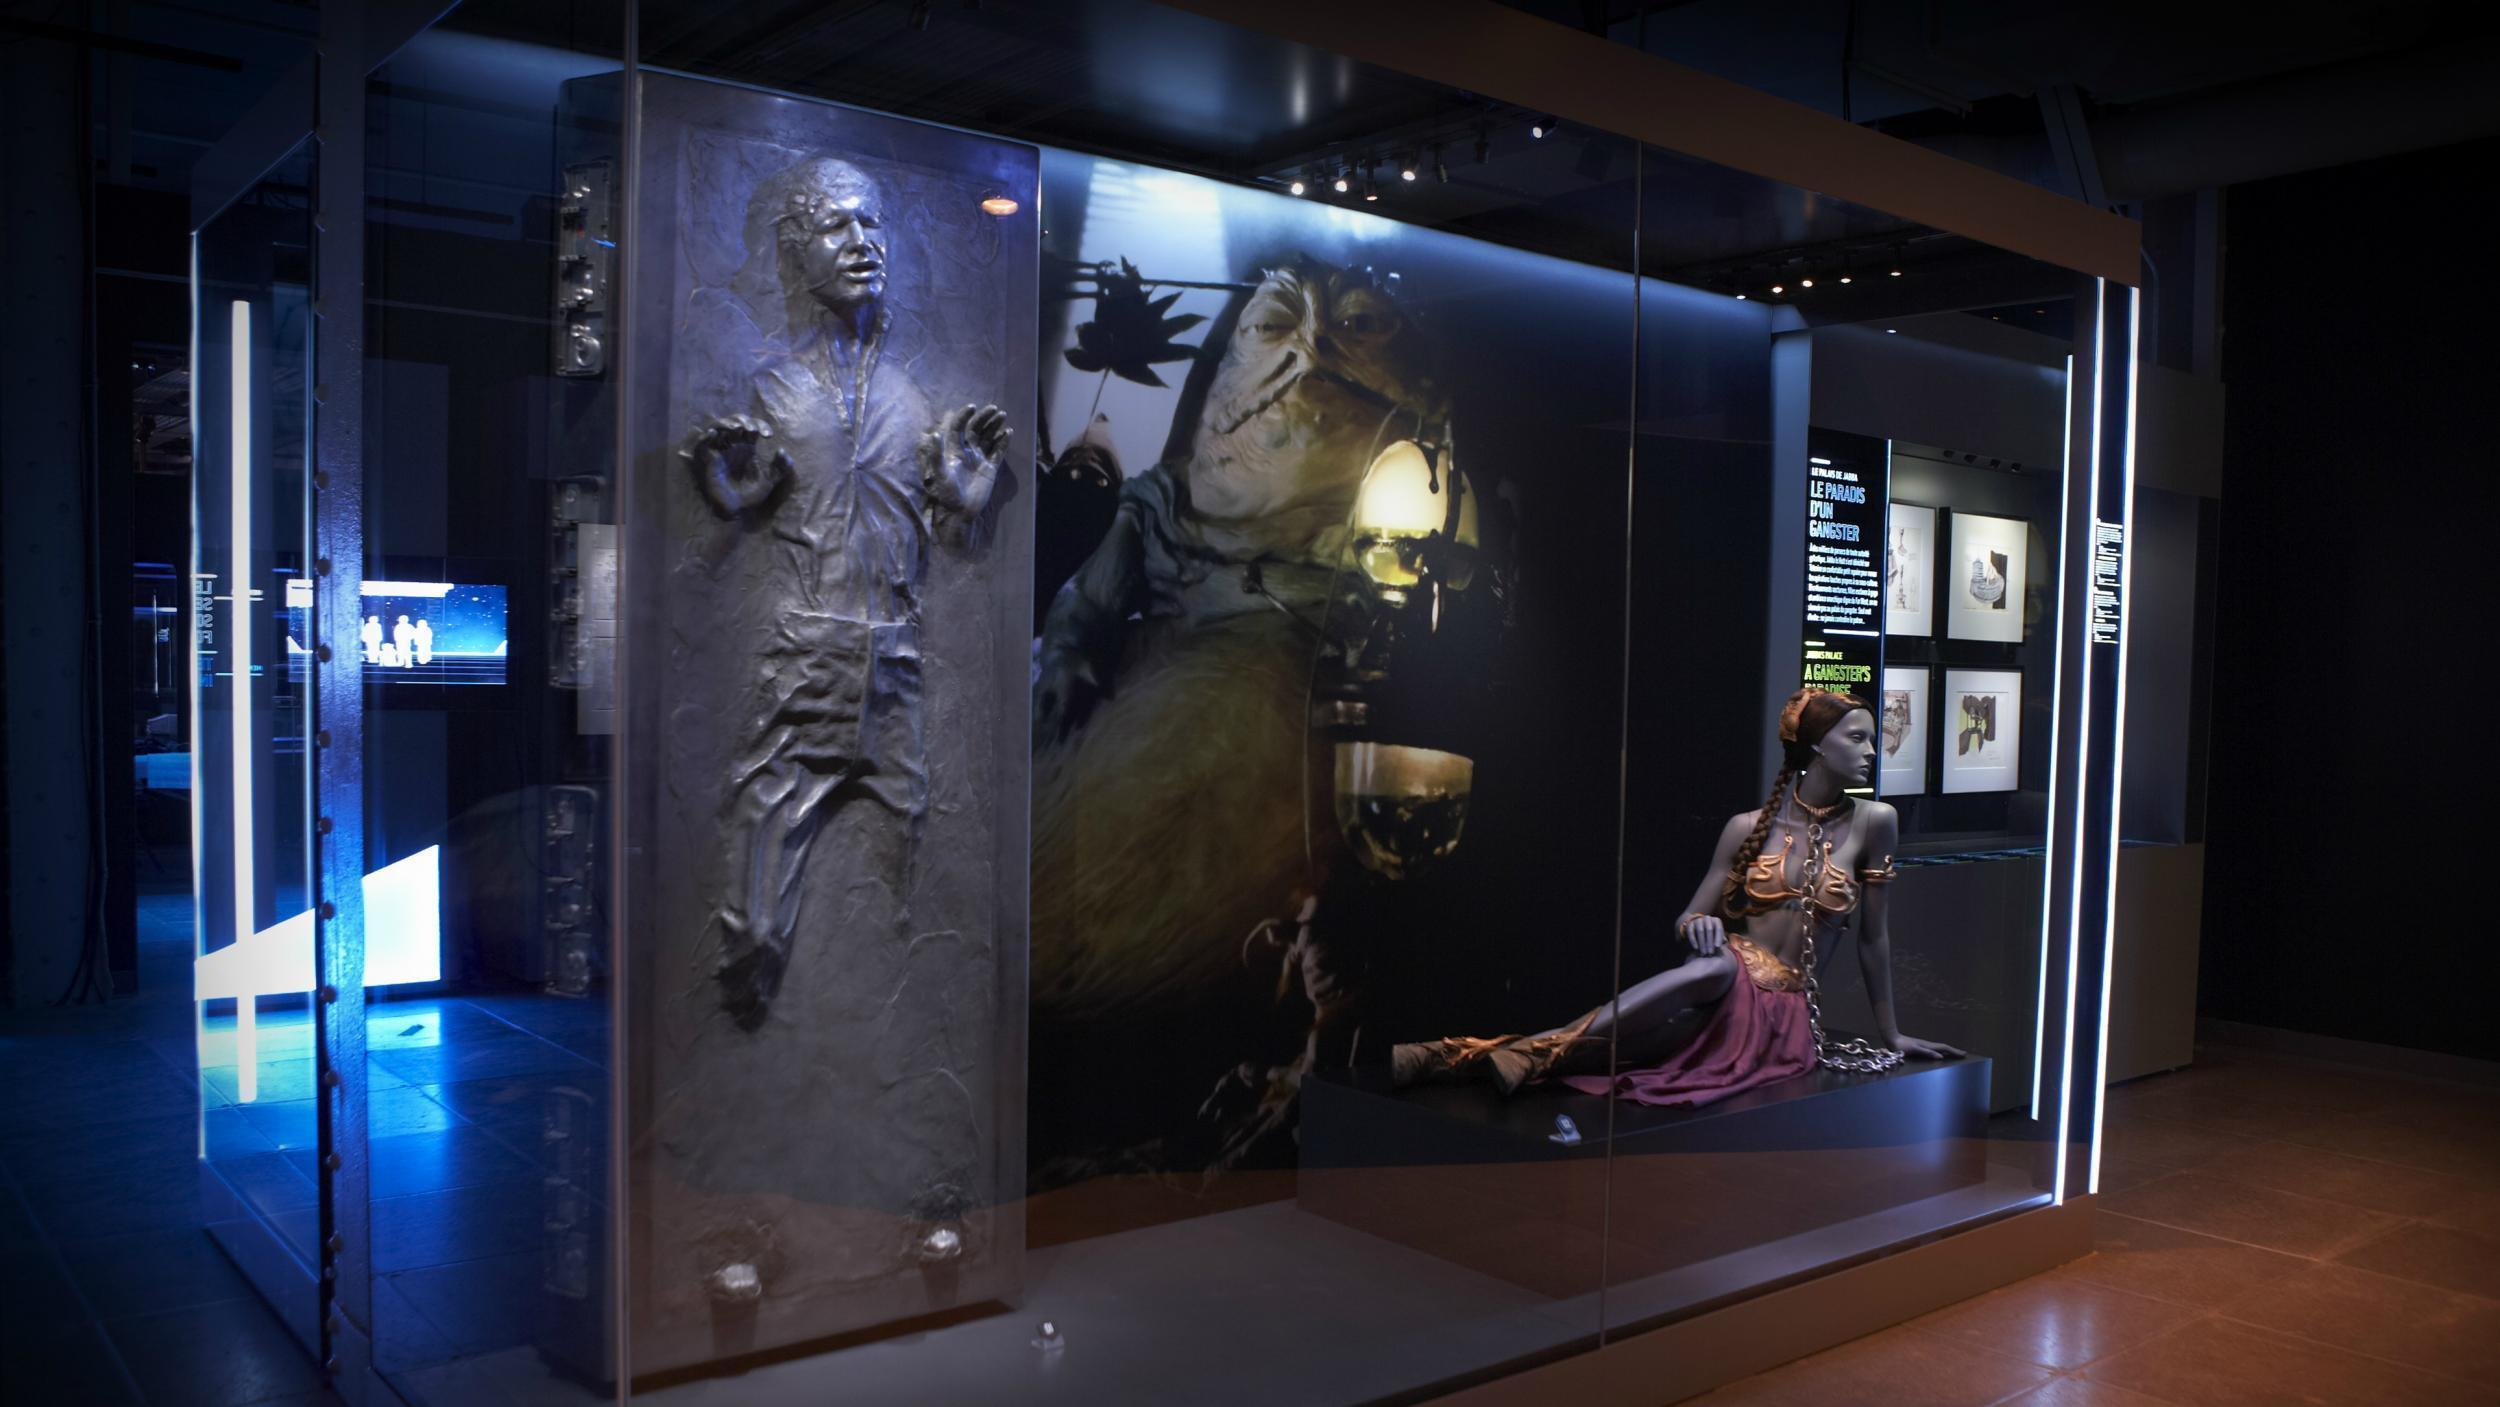 D Exhibition In London : Star wars exhibition coming to londons the o2 to feature over 200